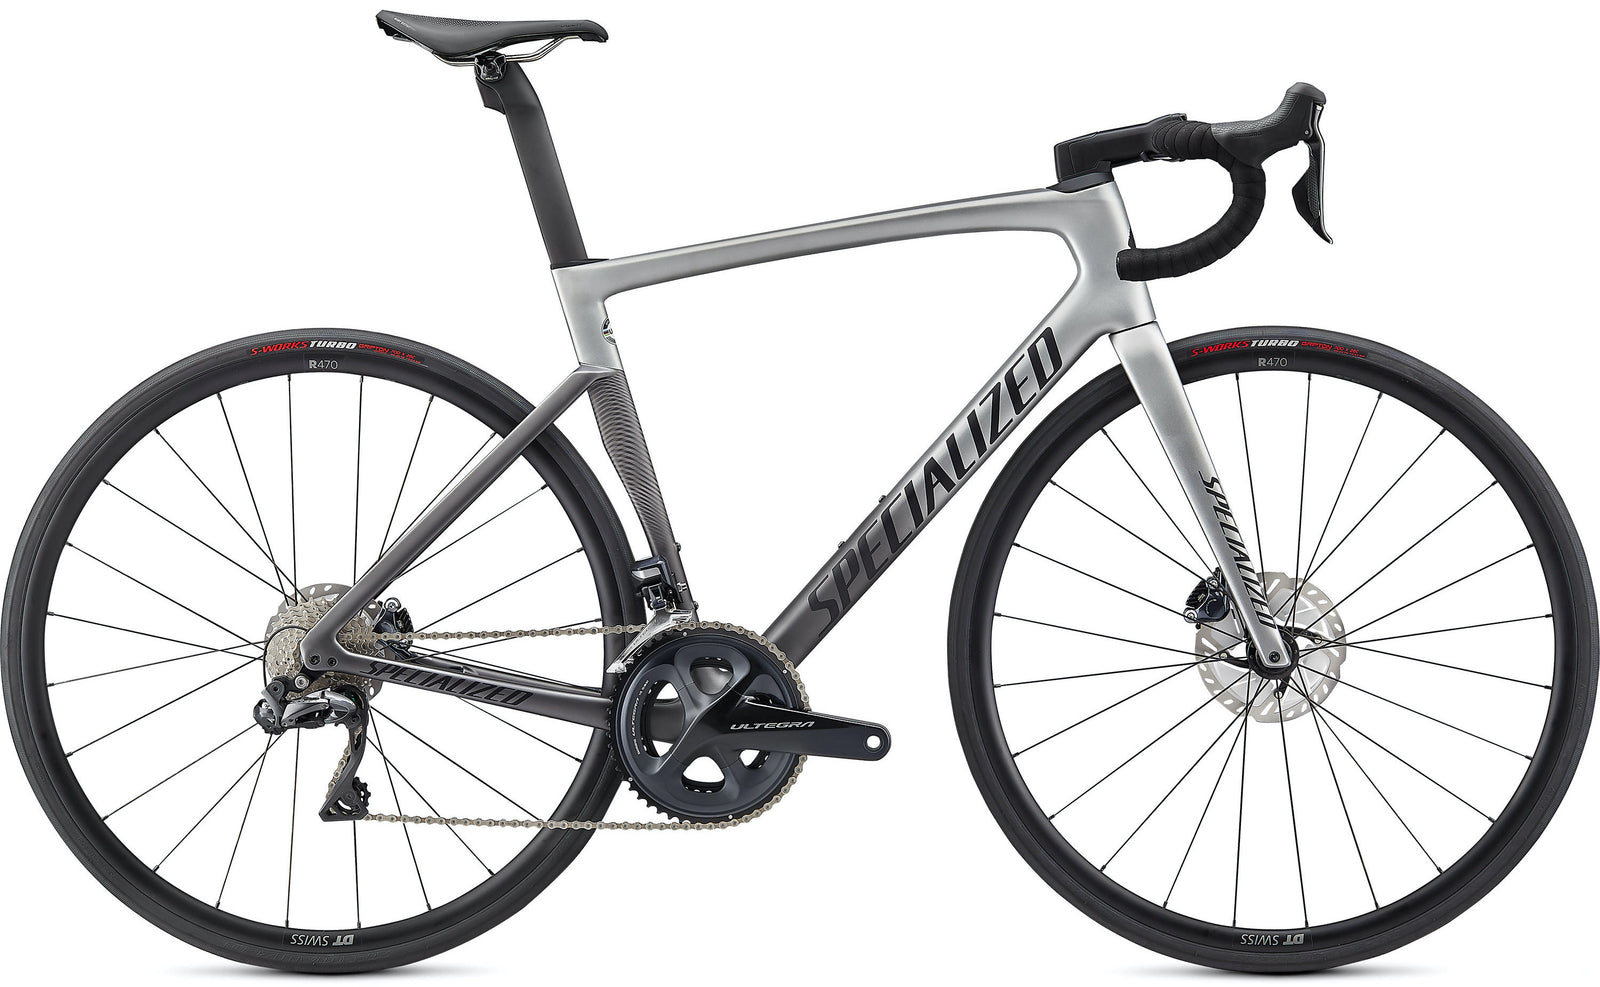 All-New Tarmac SL7 Expert